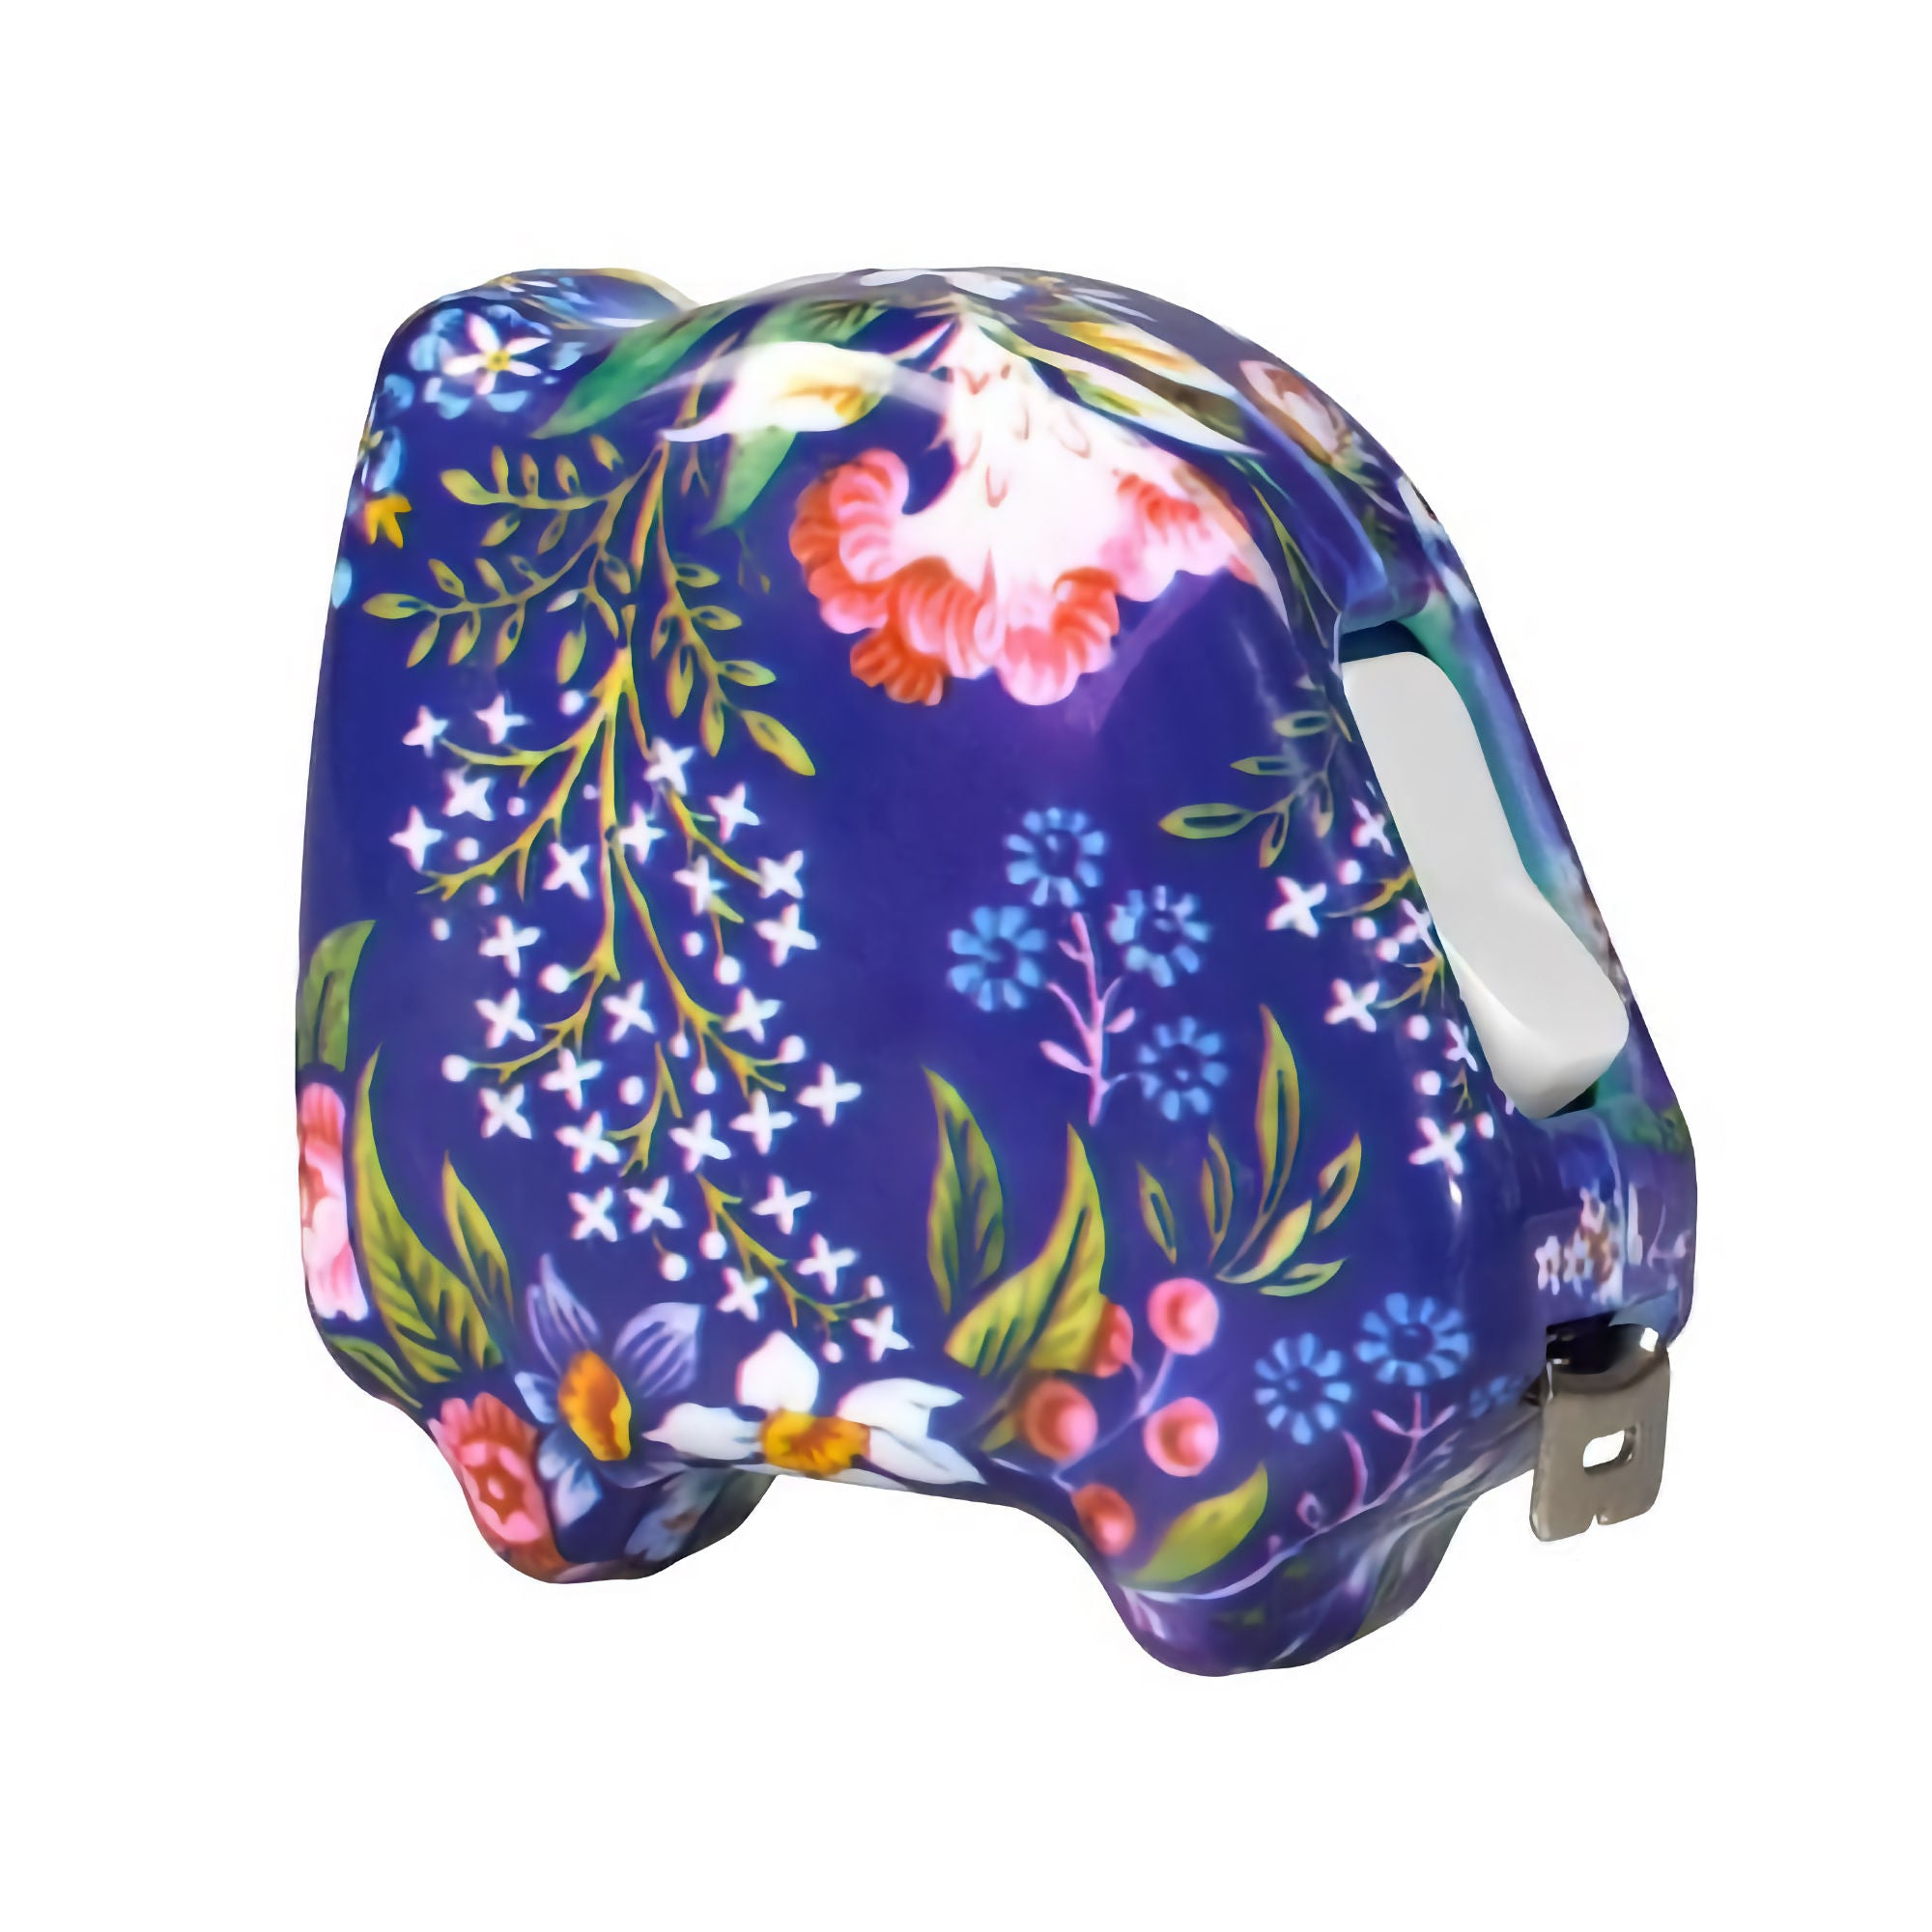 V&A Measuring Tape 3m , Blue Floral